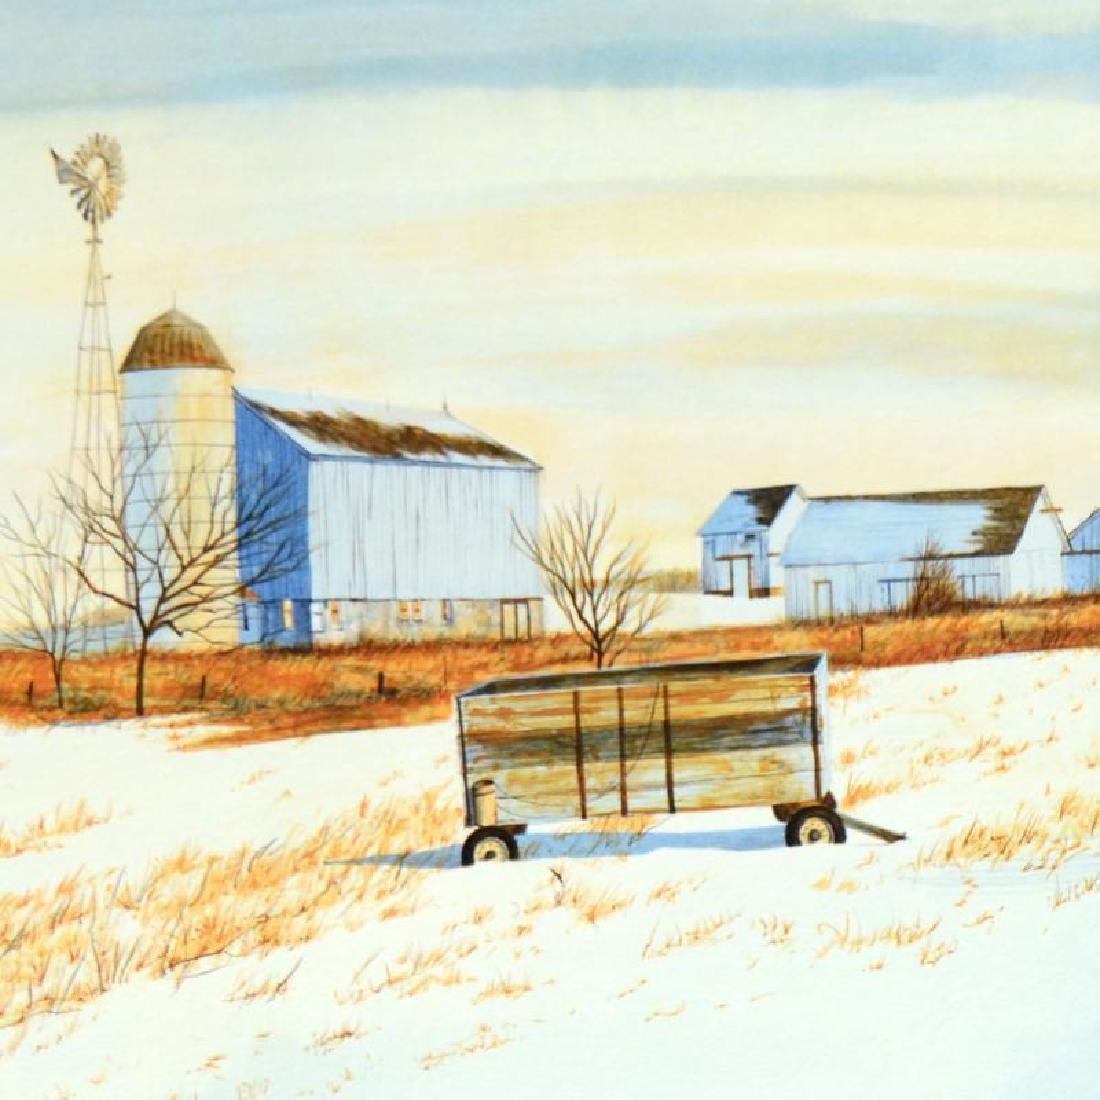 The Lonely Wagon by Nelson, William - 2